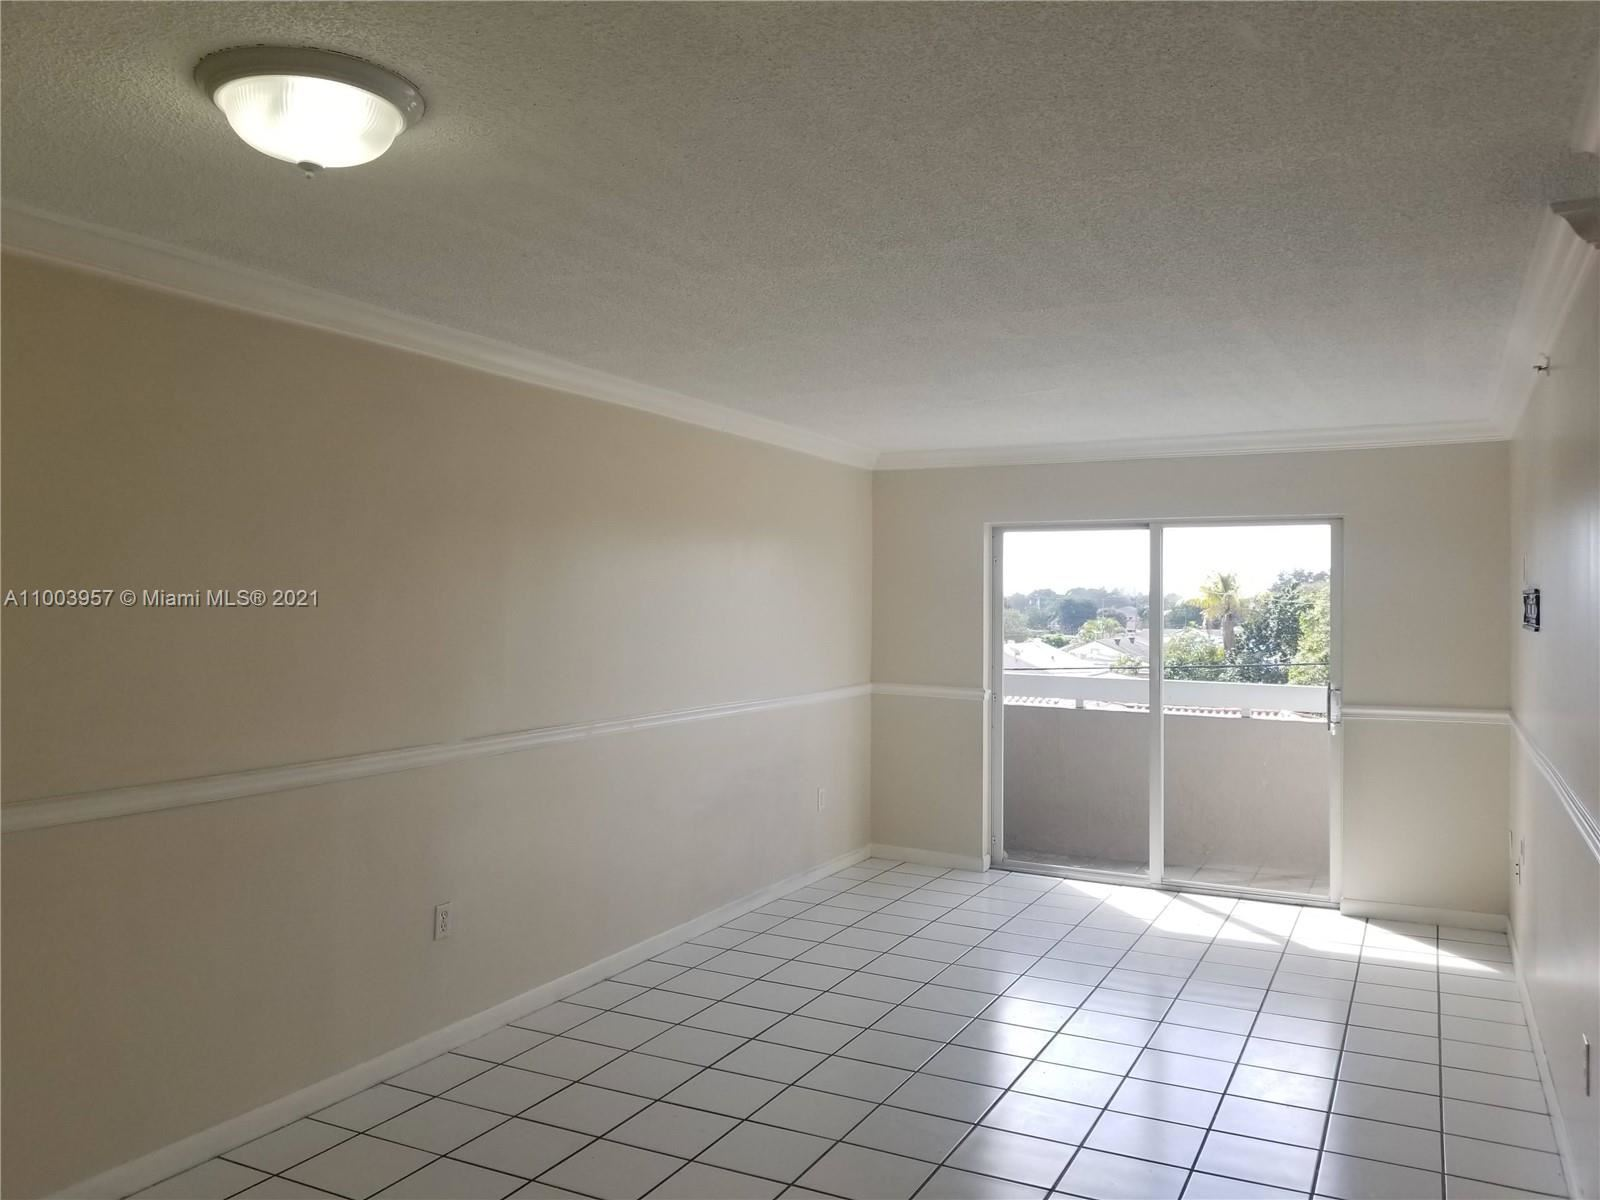 600 NW 32nd Pl #313, Miami, FL 33125 - #: A11003957